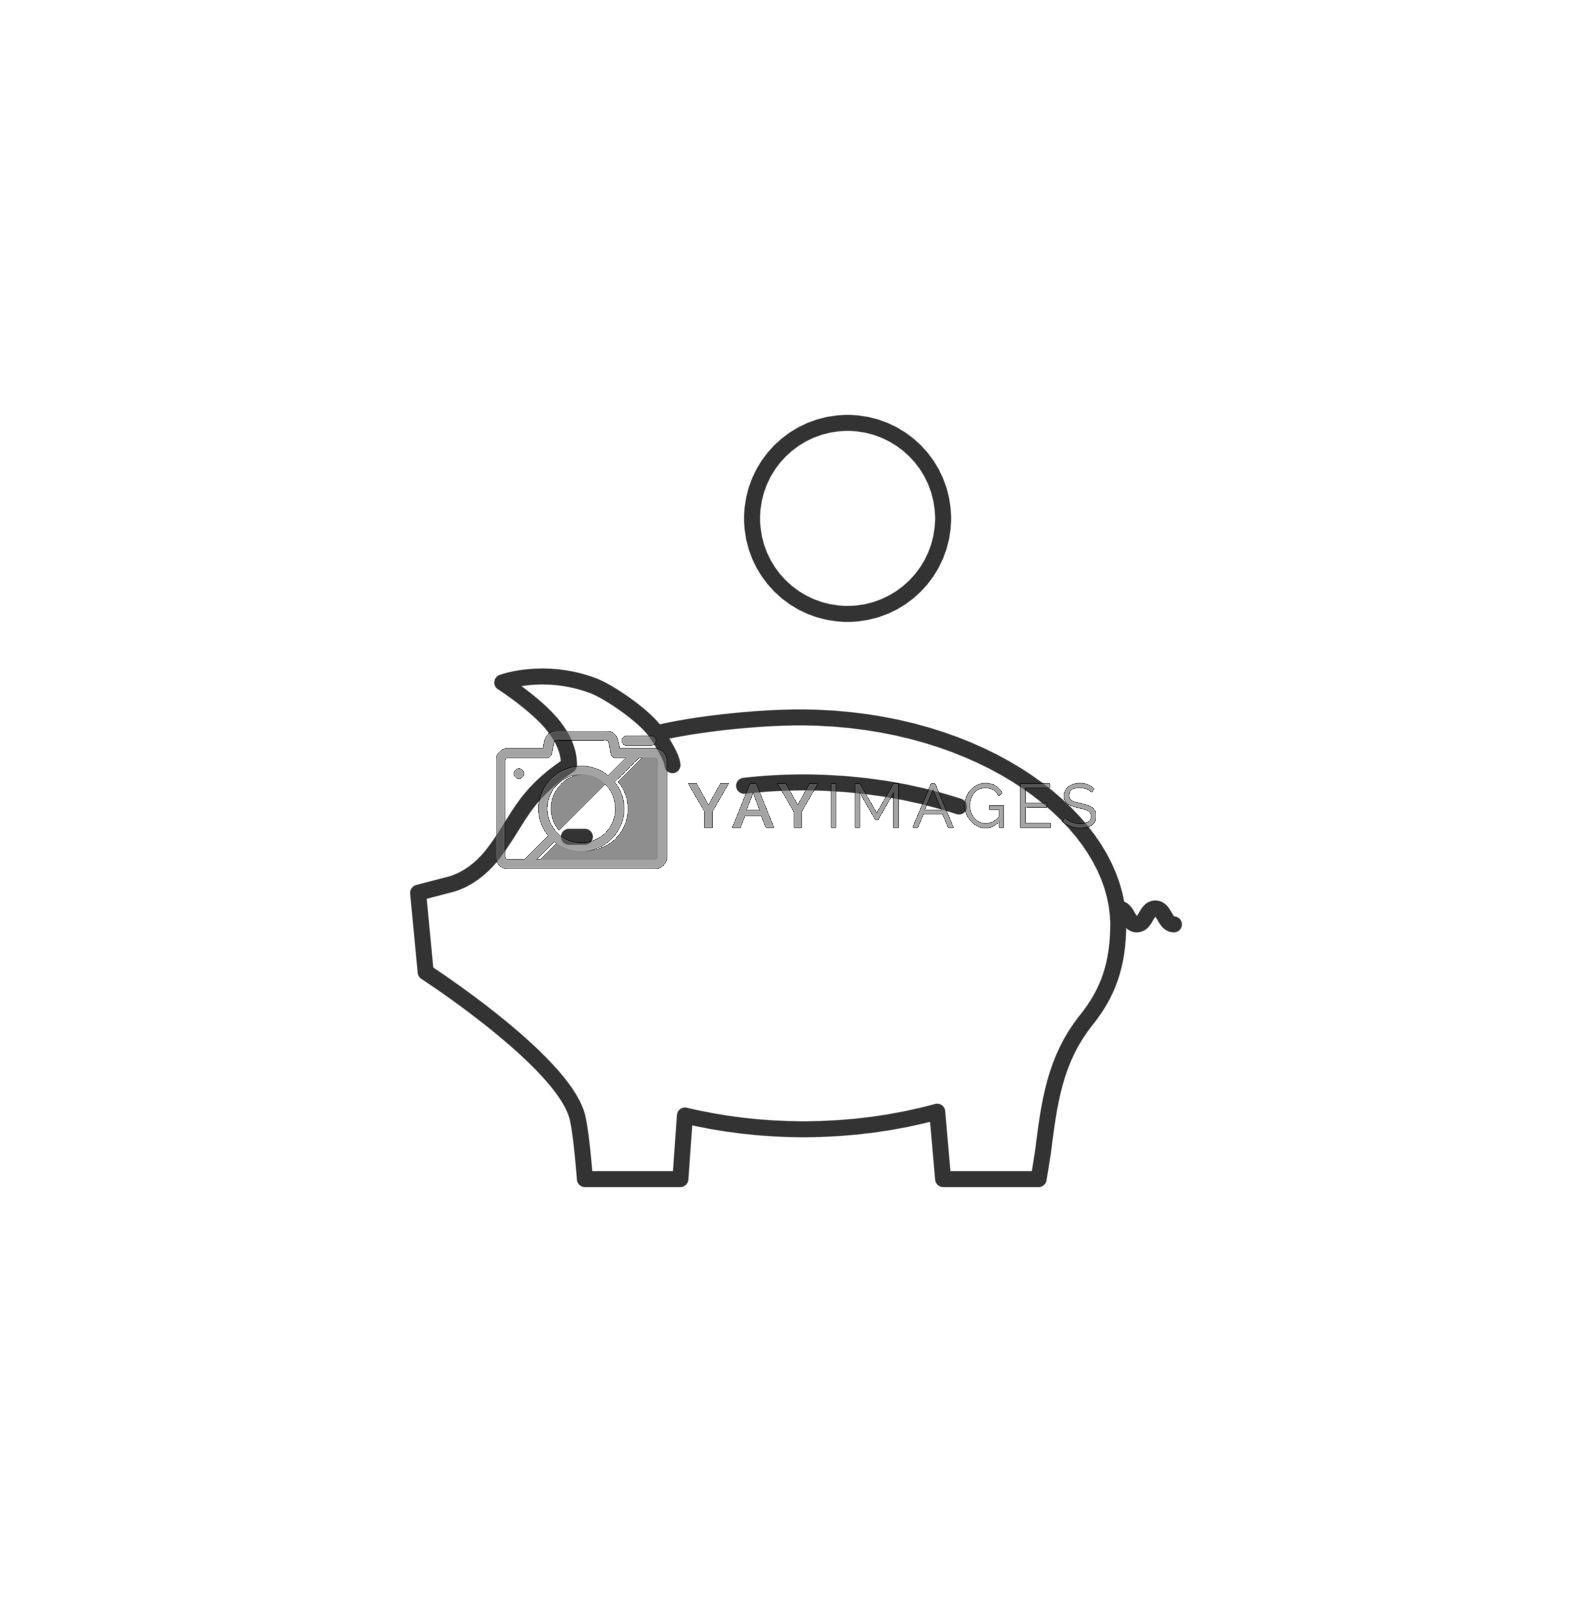 Piggy Bank Related Vector Line Icon. Sign Isolated on the White Background. Editable Stroke EPS file. Vector illustration.